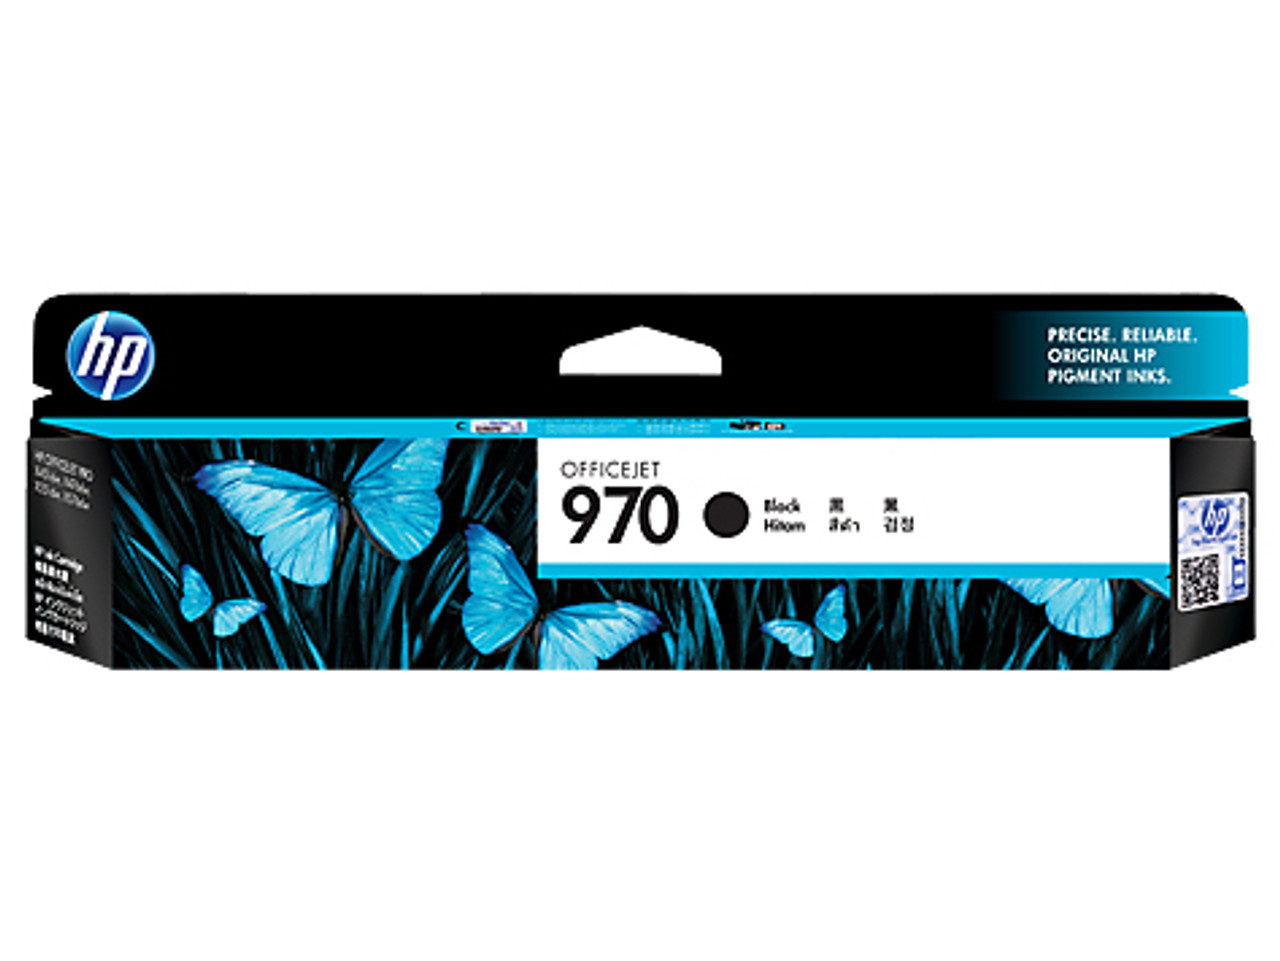 Image for HP 970 Black Original Ink Cartridge, up to 3000 pages (CN621AA) CX Computer Superstore